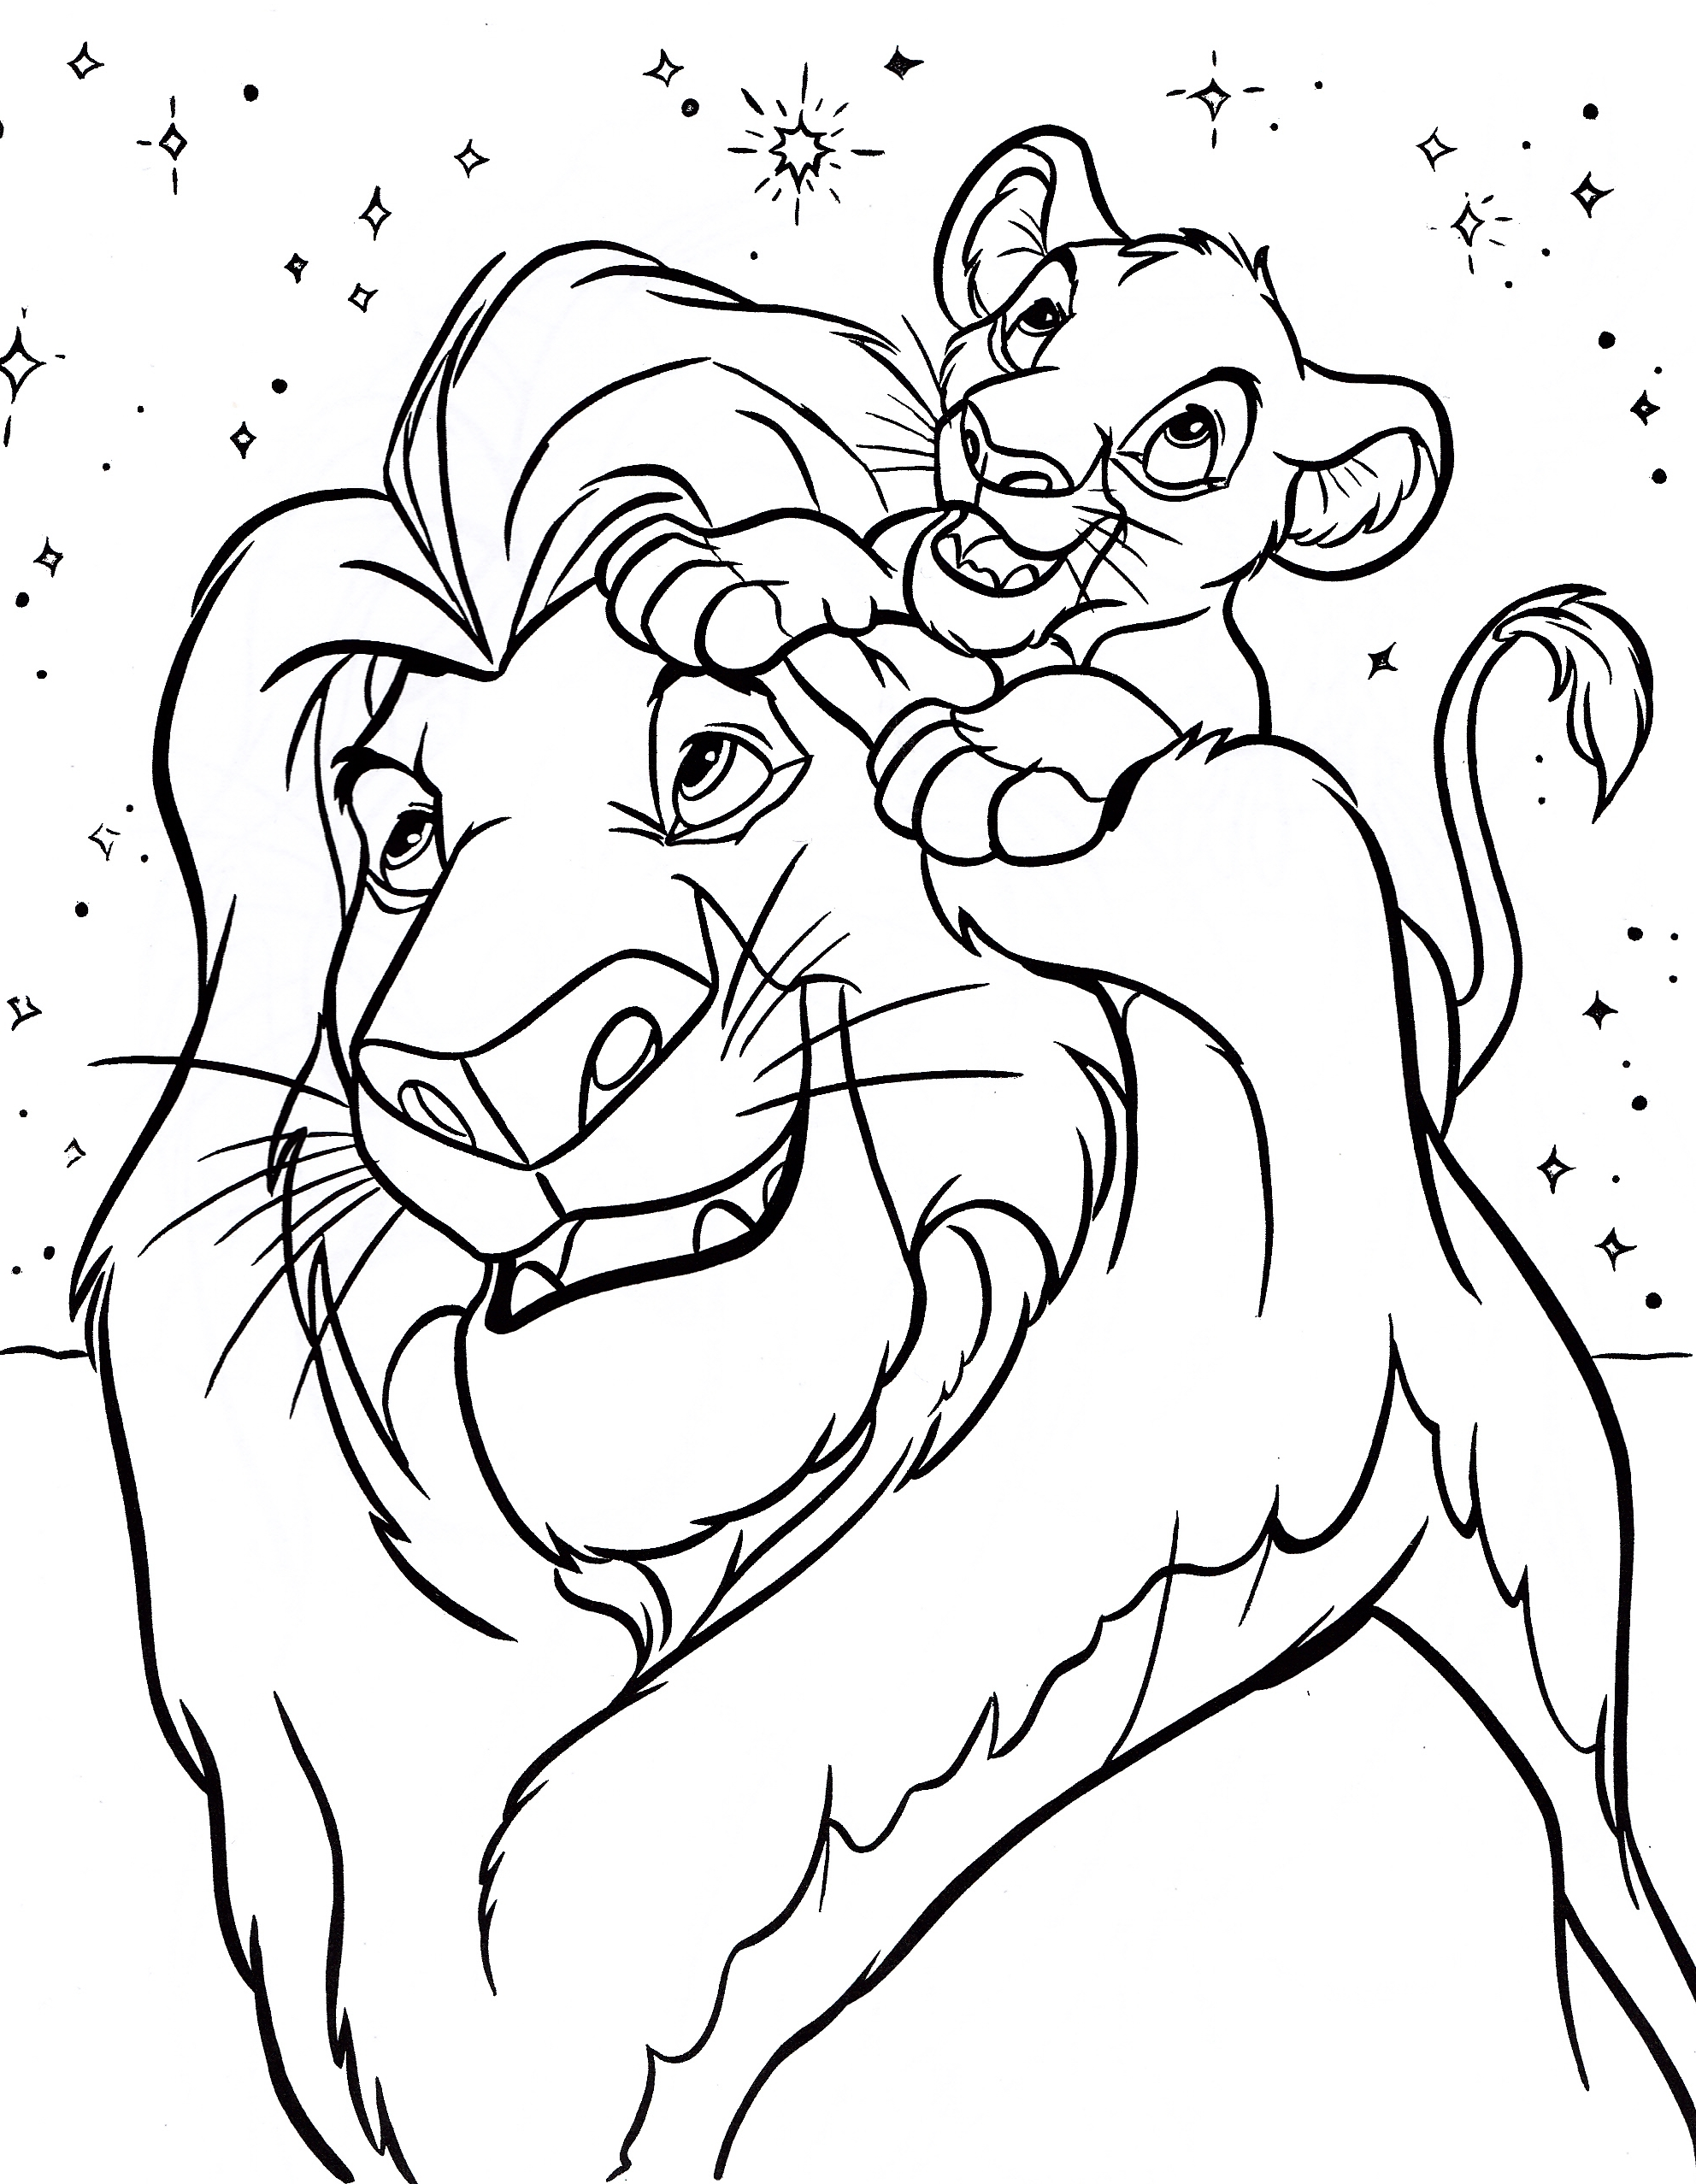 Colouring In Sheets Lion King : Free printable simba coloring pages for kids